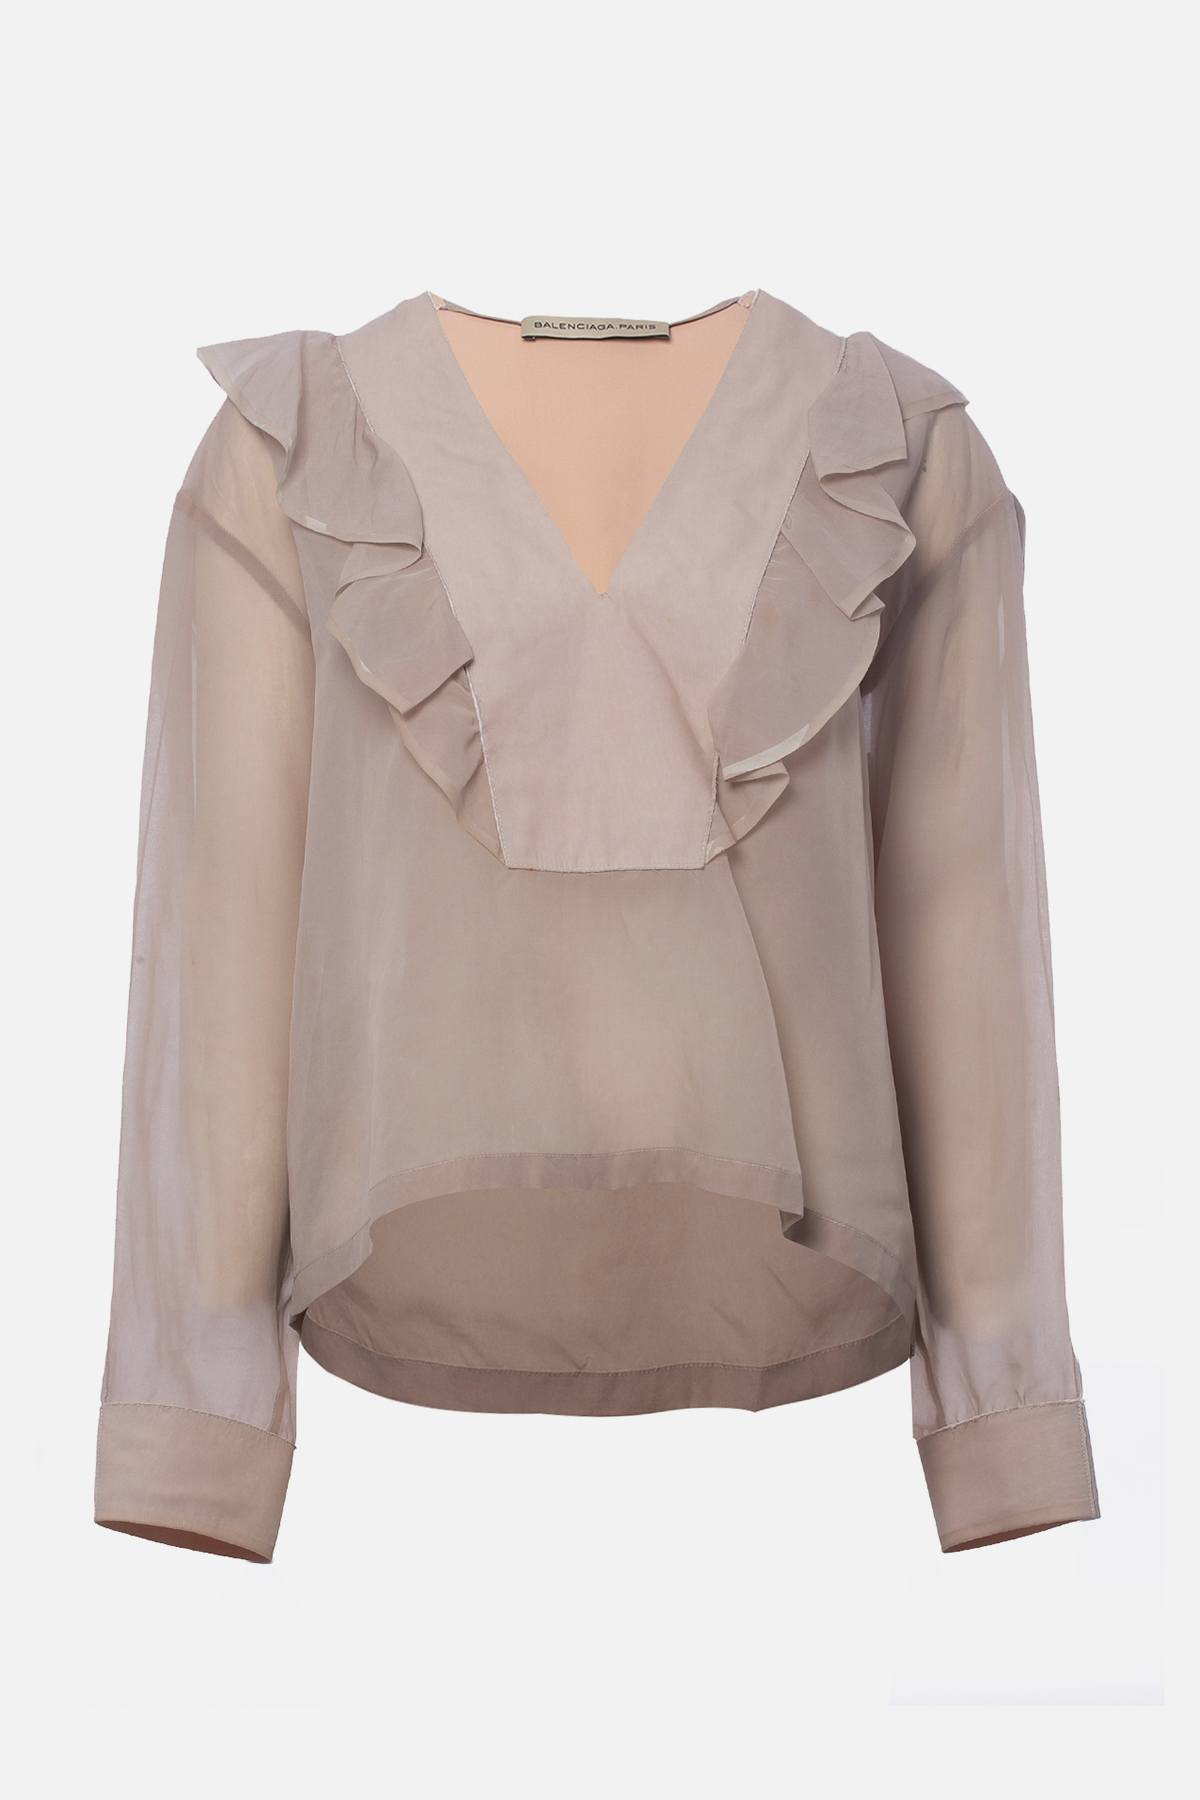 RUFFLE-ACCENTED BLOUSE